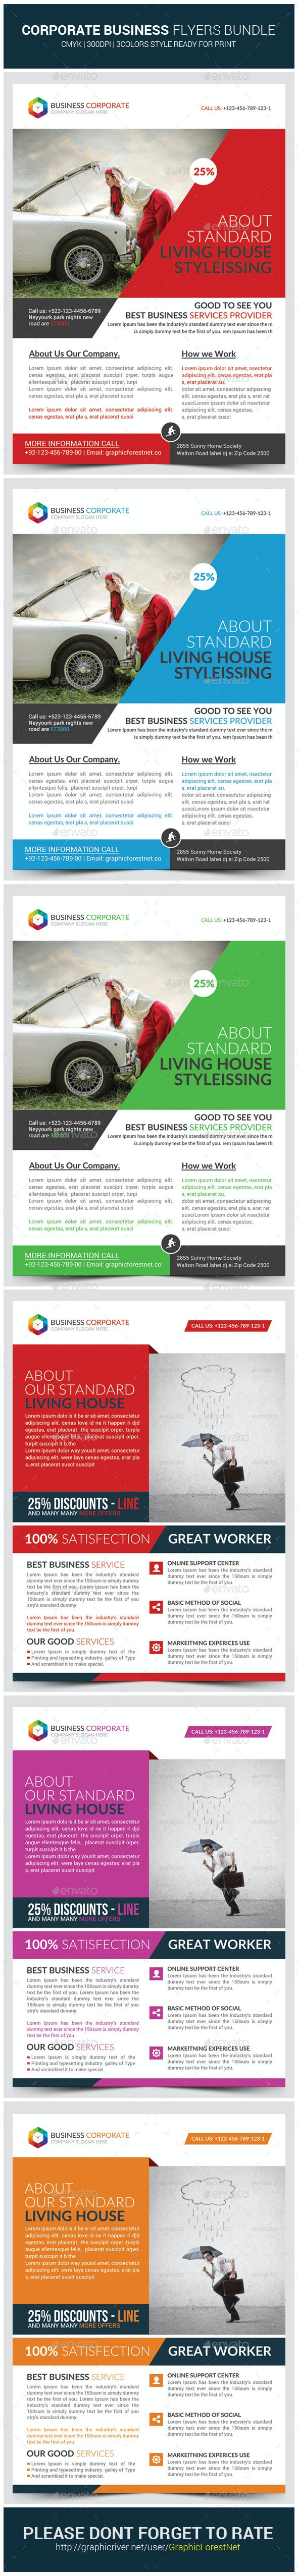 The Corporate Business Flyers Bundle - Corporate Flyers